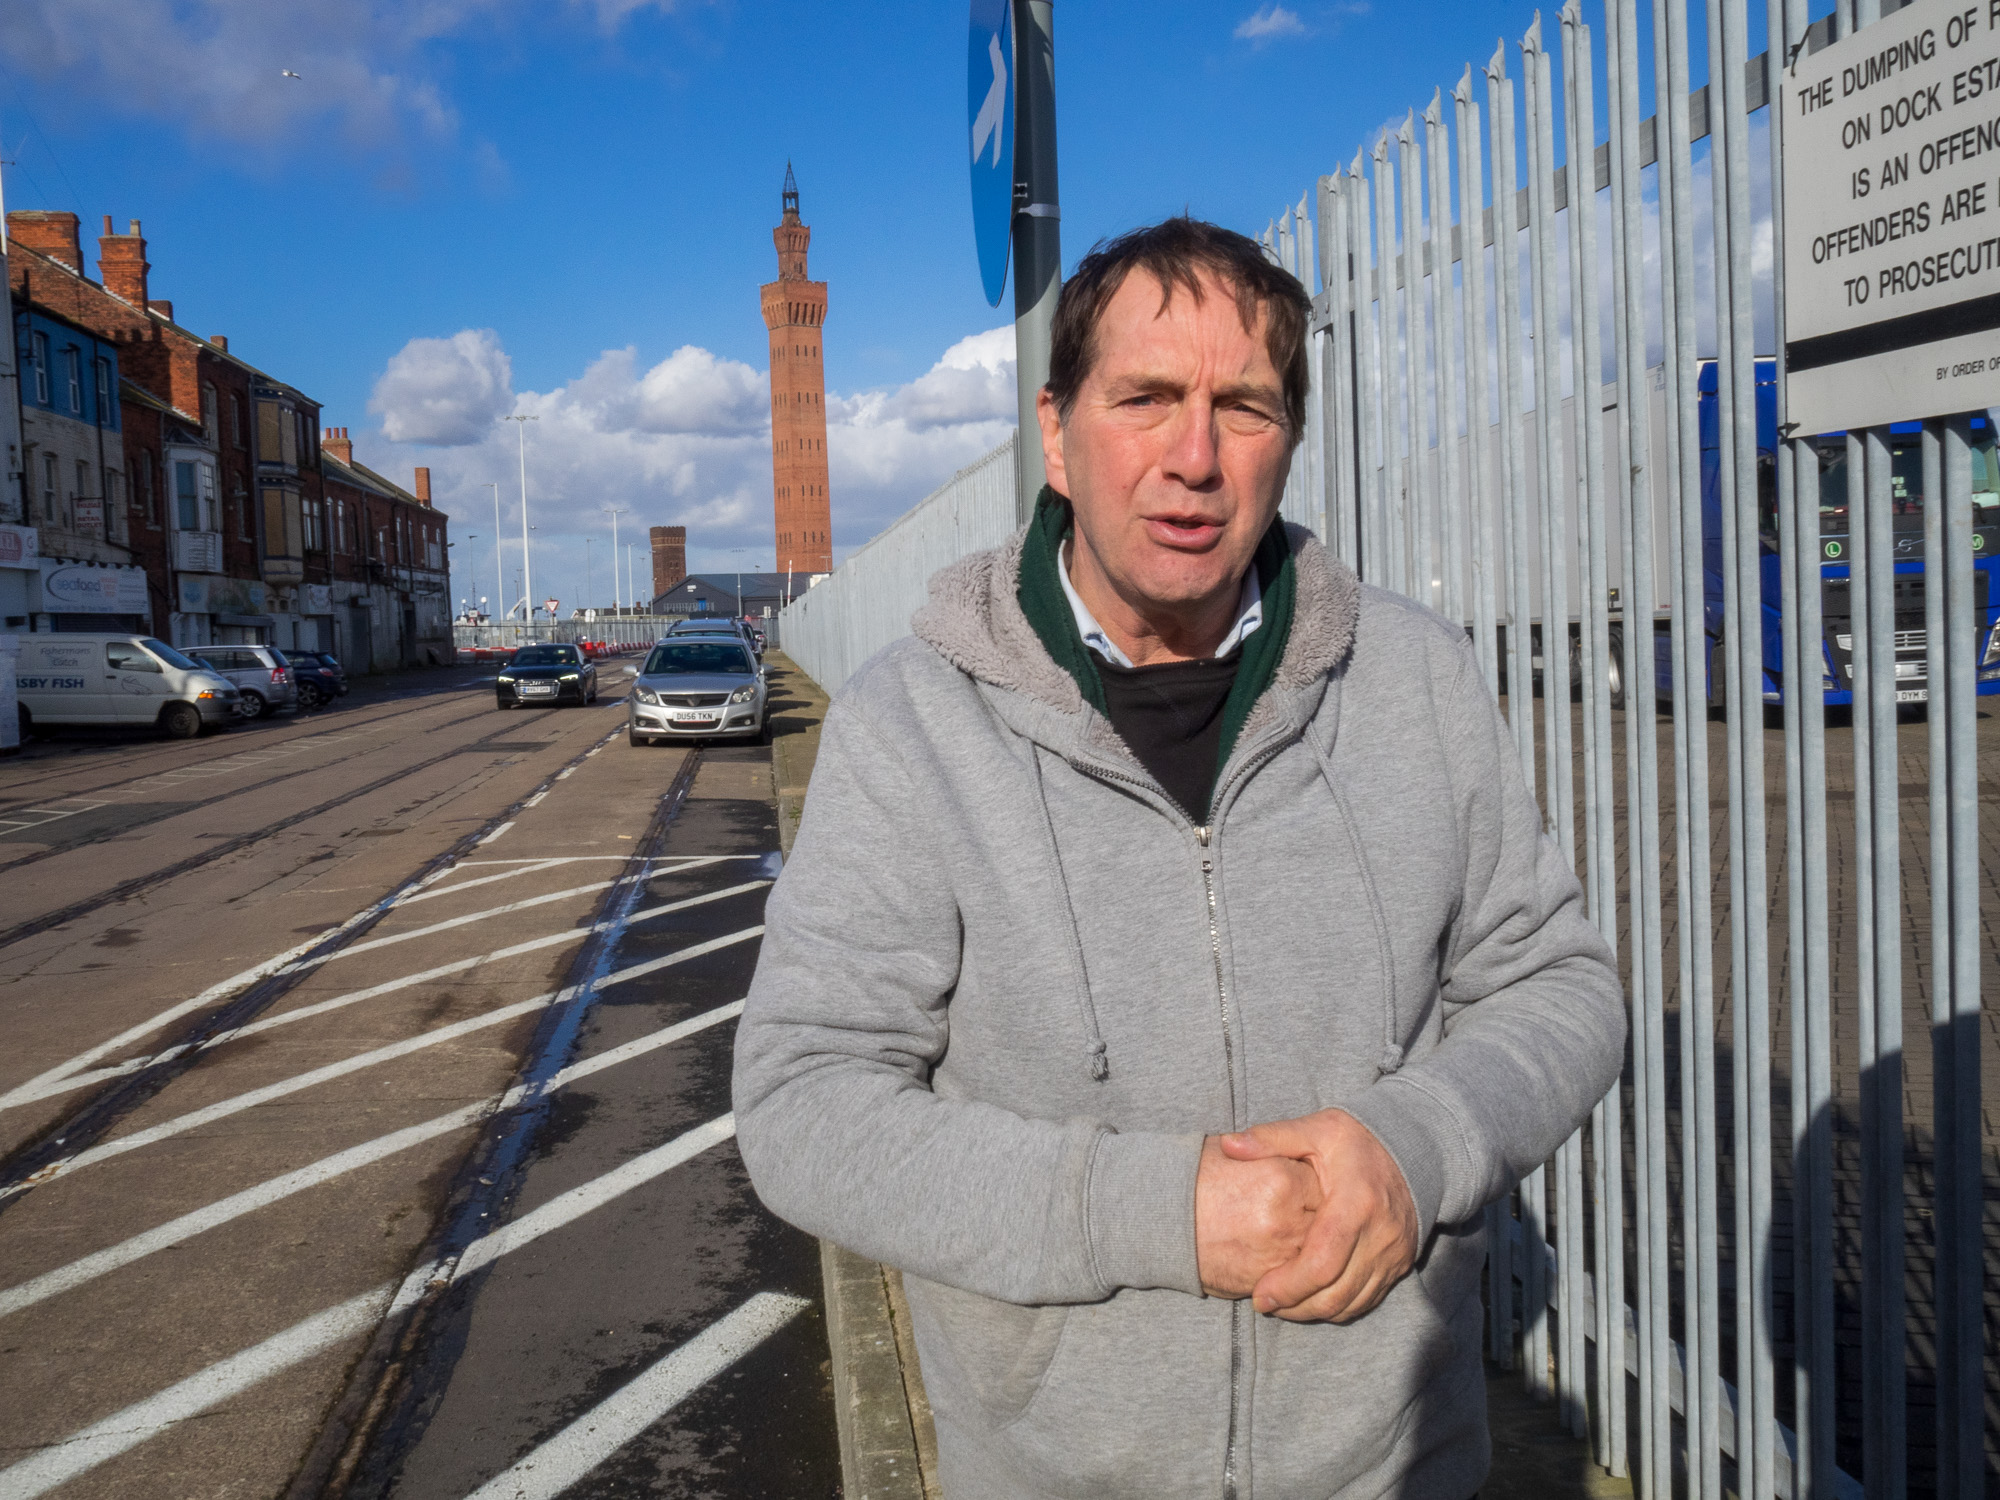 Ian Salisbury by The Kasbah, Grimsby, 2018 Image by Stewart Wall